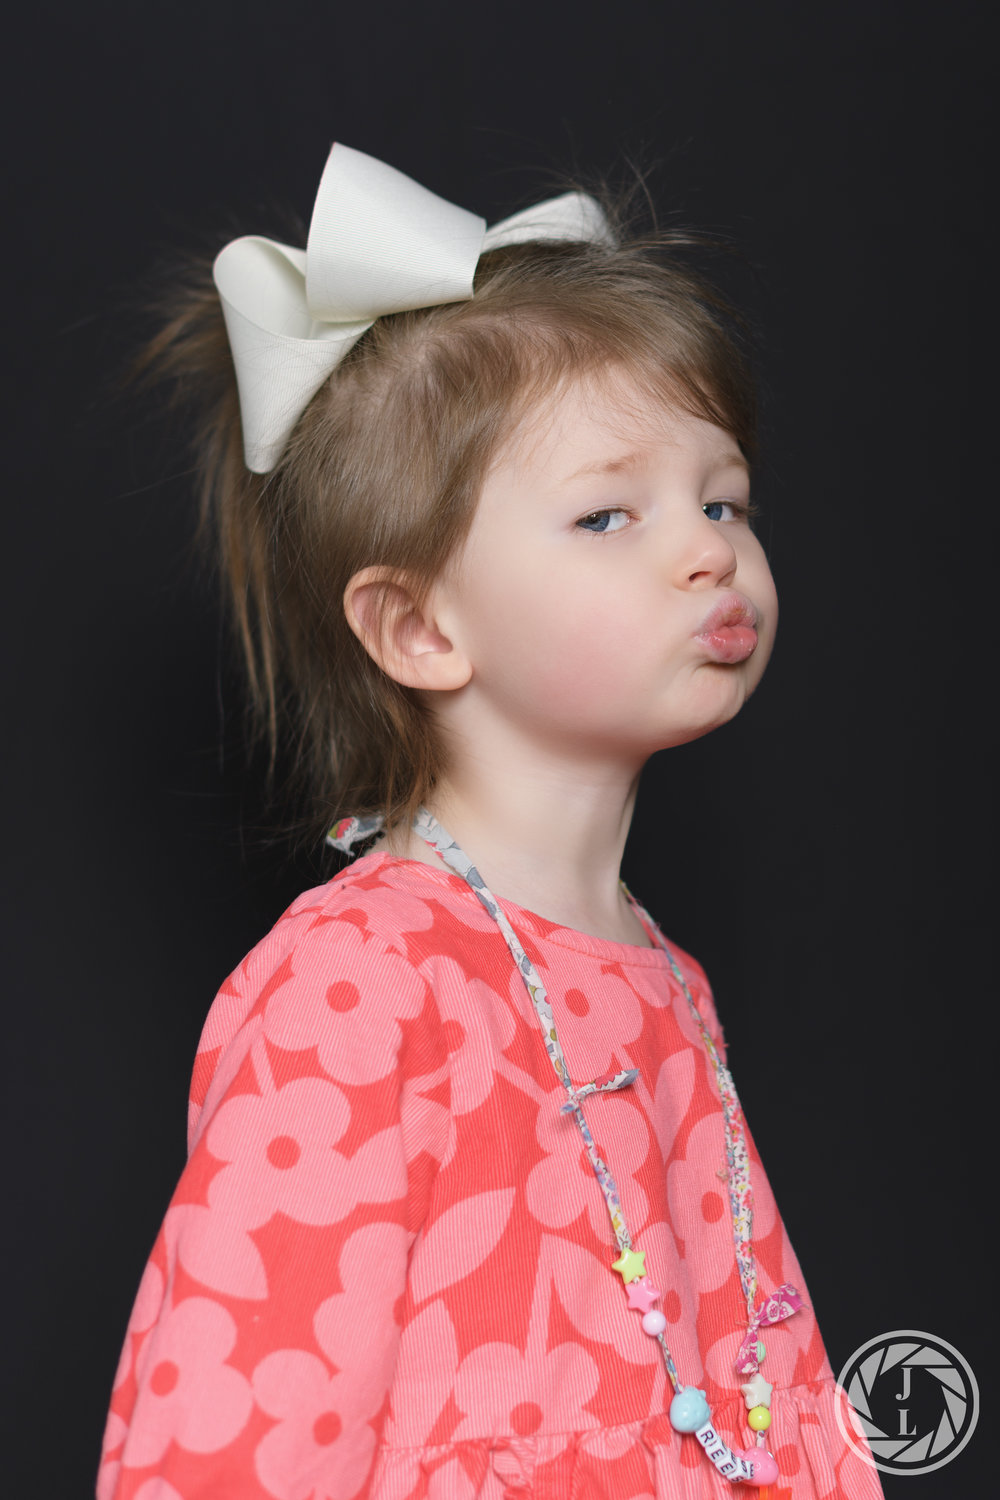 A toddler with a pink dress on starring sideways and blowing the camera a kiss.